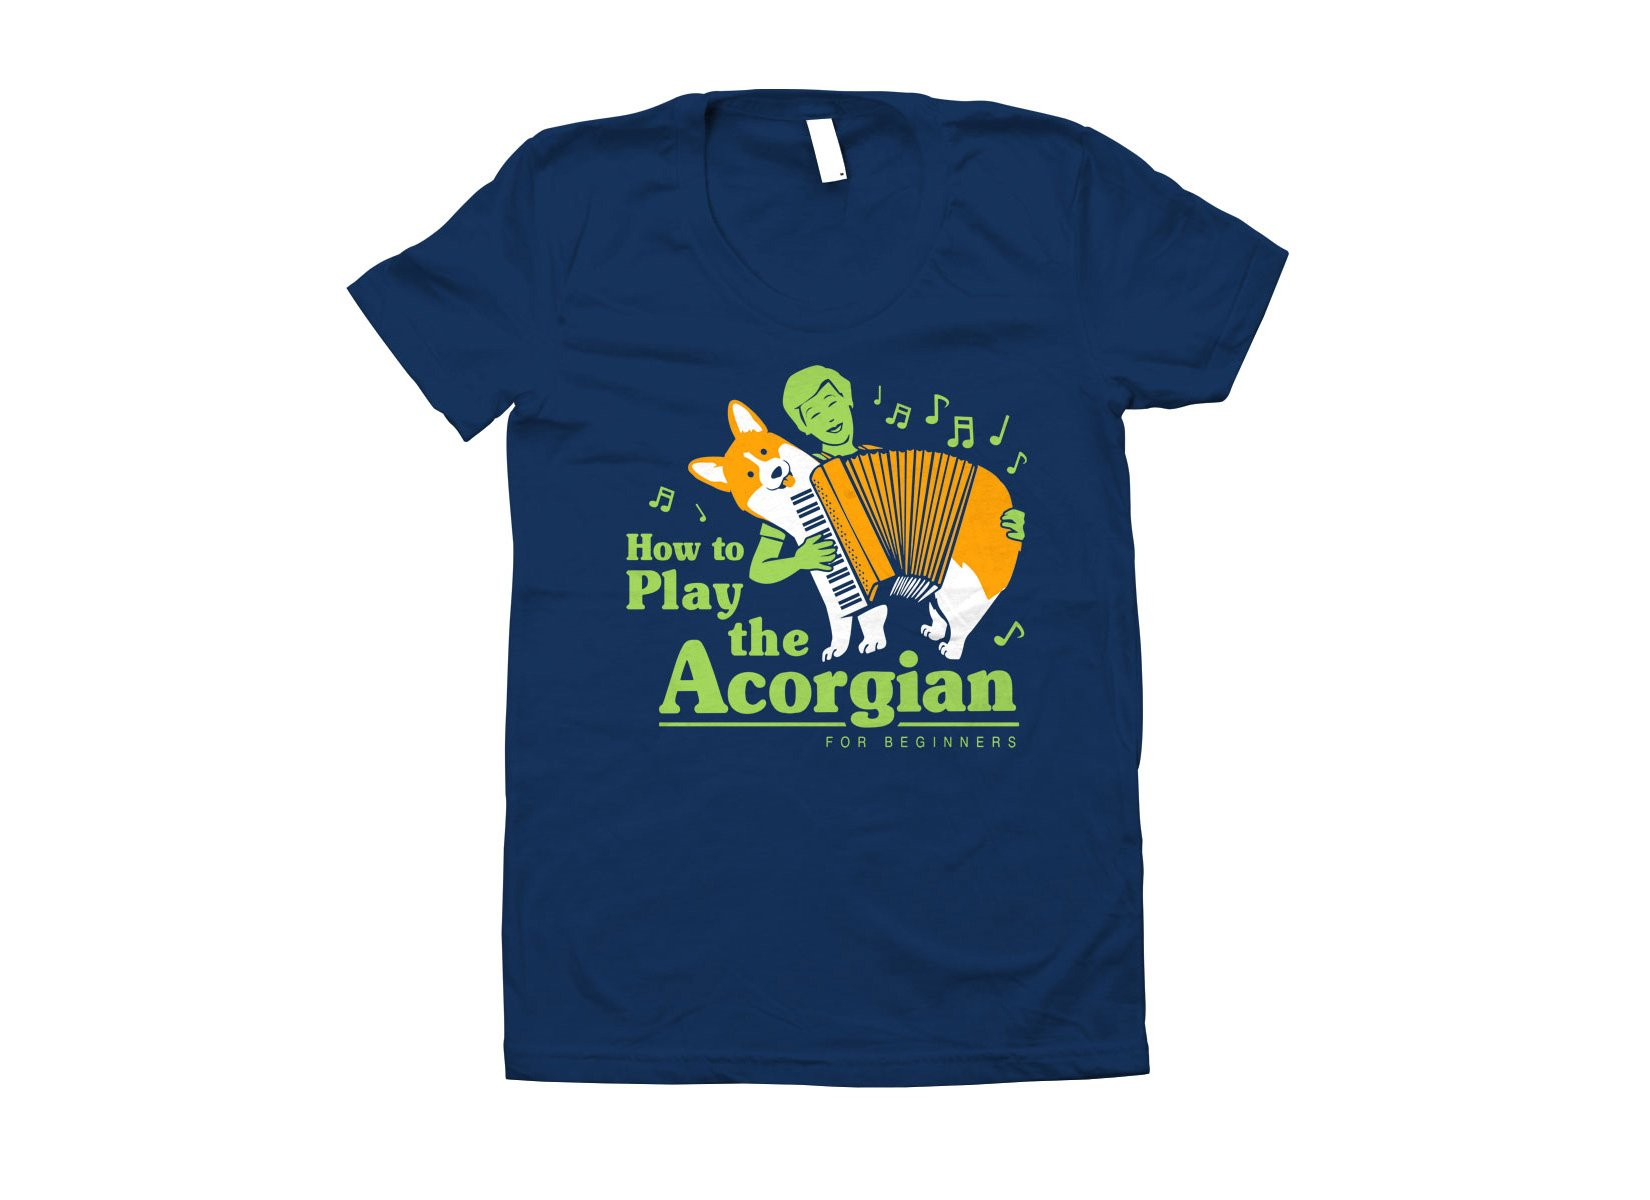 How To Play The Acorgian on Juniors T-Shirt